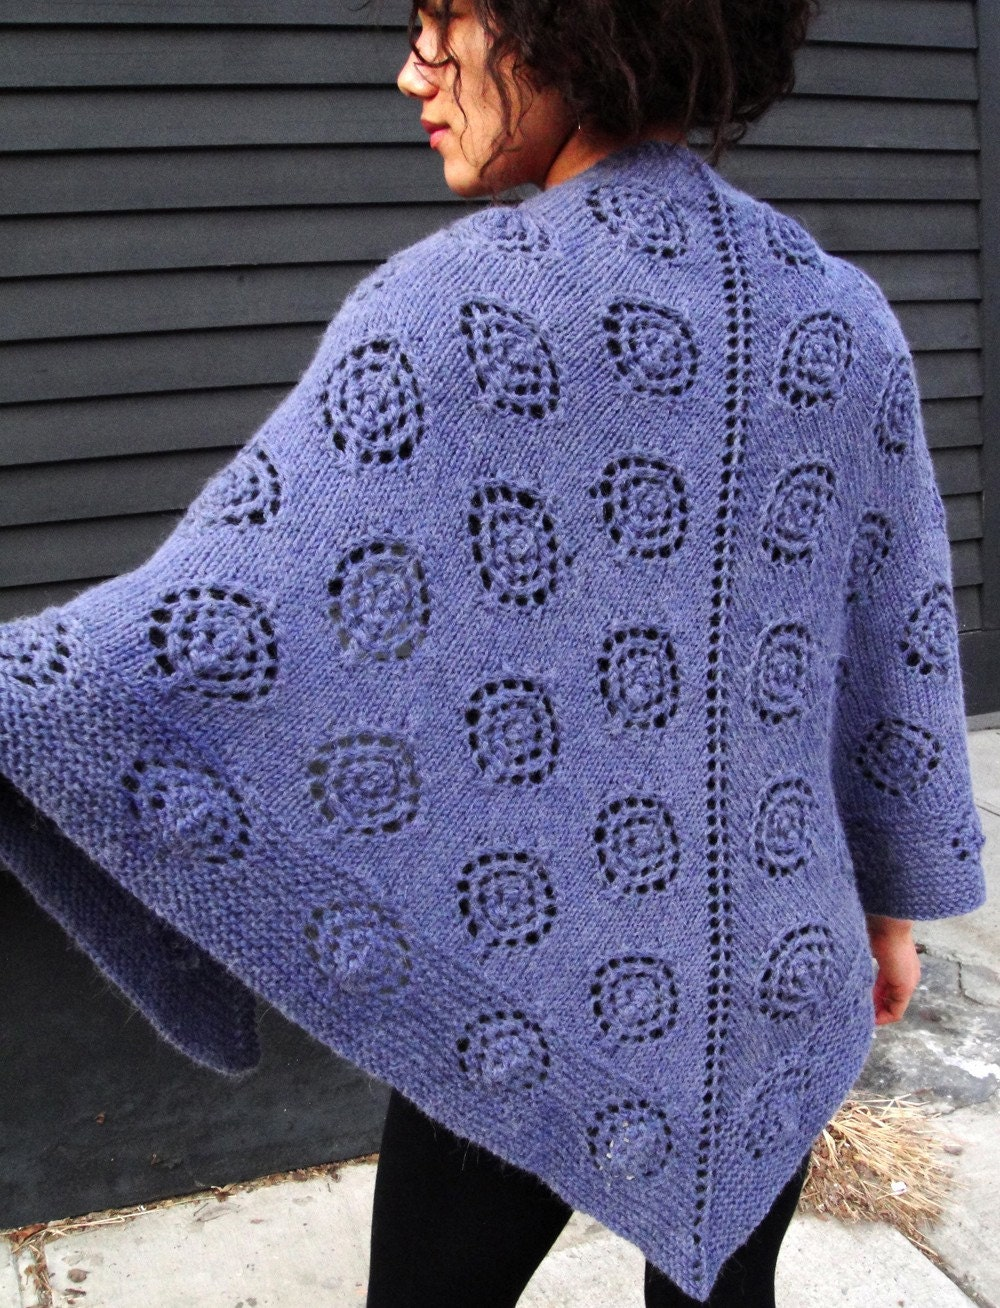 Knitting Pattern Wrap Shawl : Dotty Triangle Shawl KNITTING PATTERN DOWNLOAD